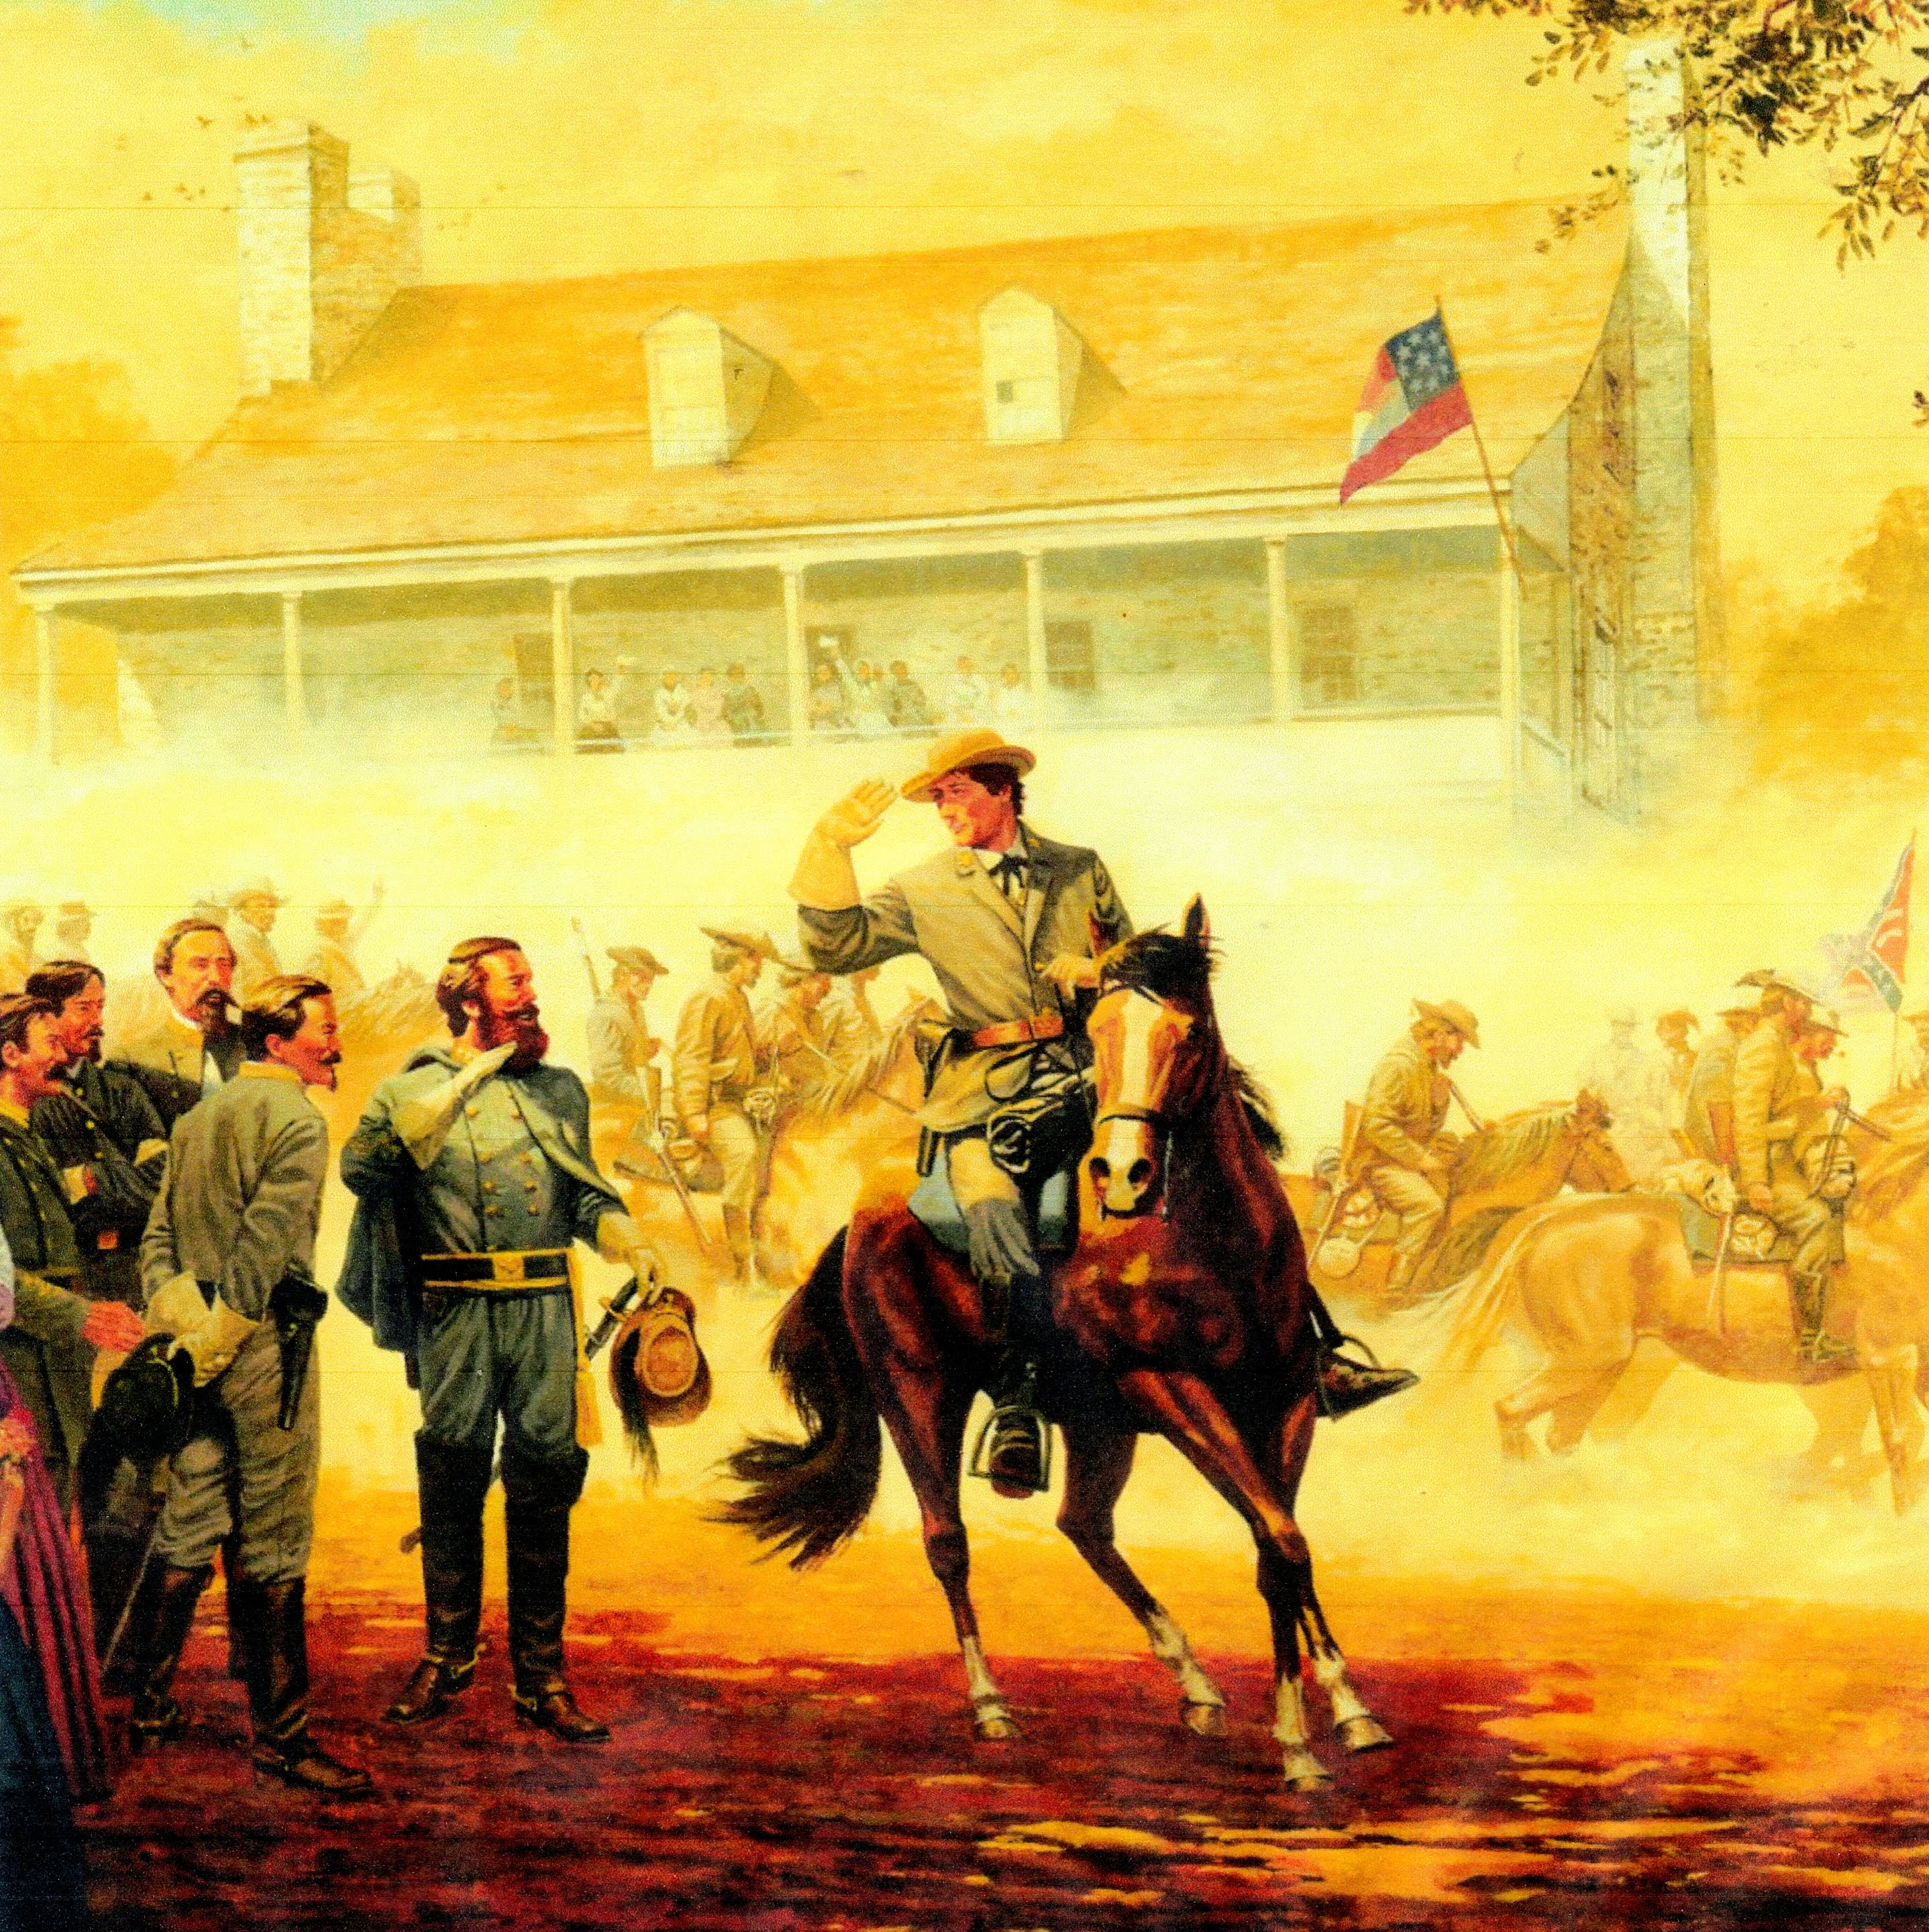 John S. Mosby meets with Jeb Stuart in front of the Red Foxx Inn - June 17, 1863